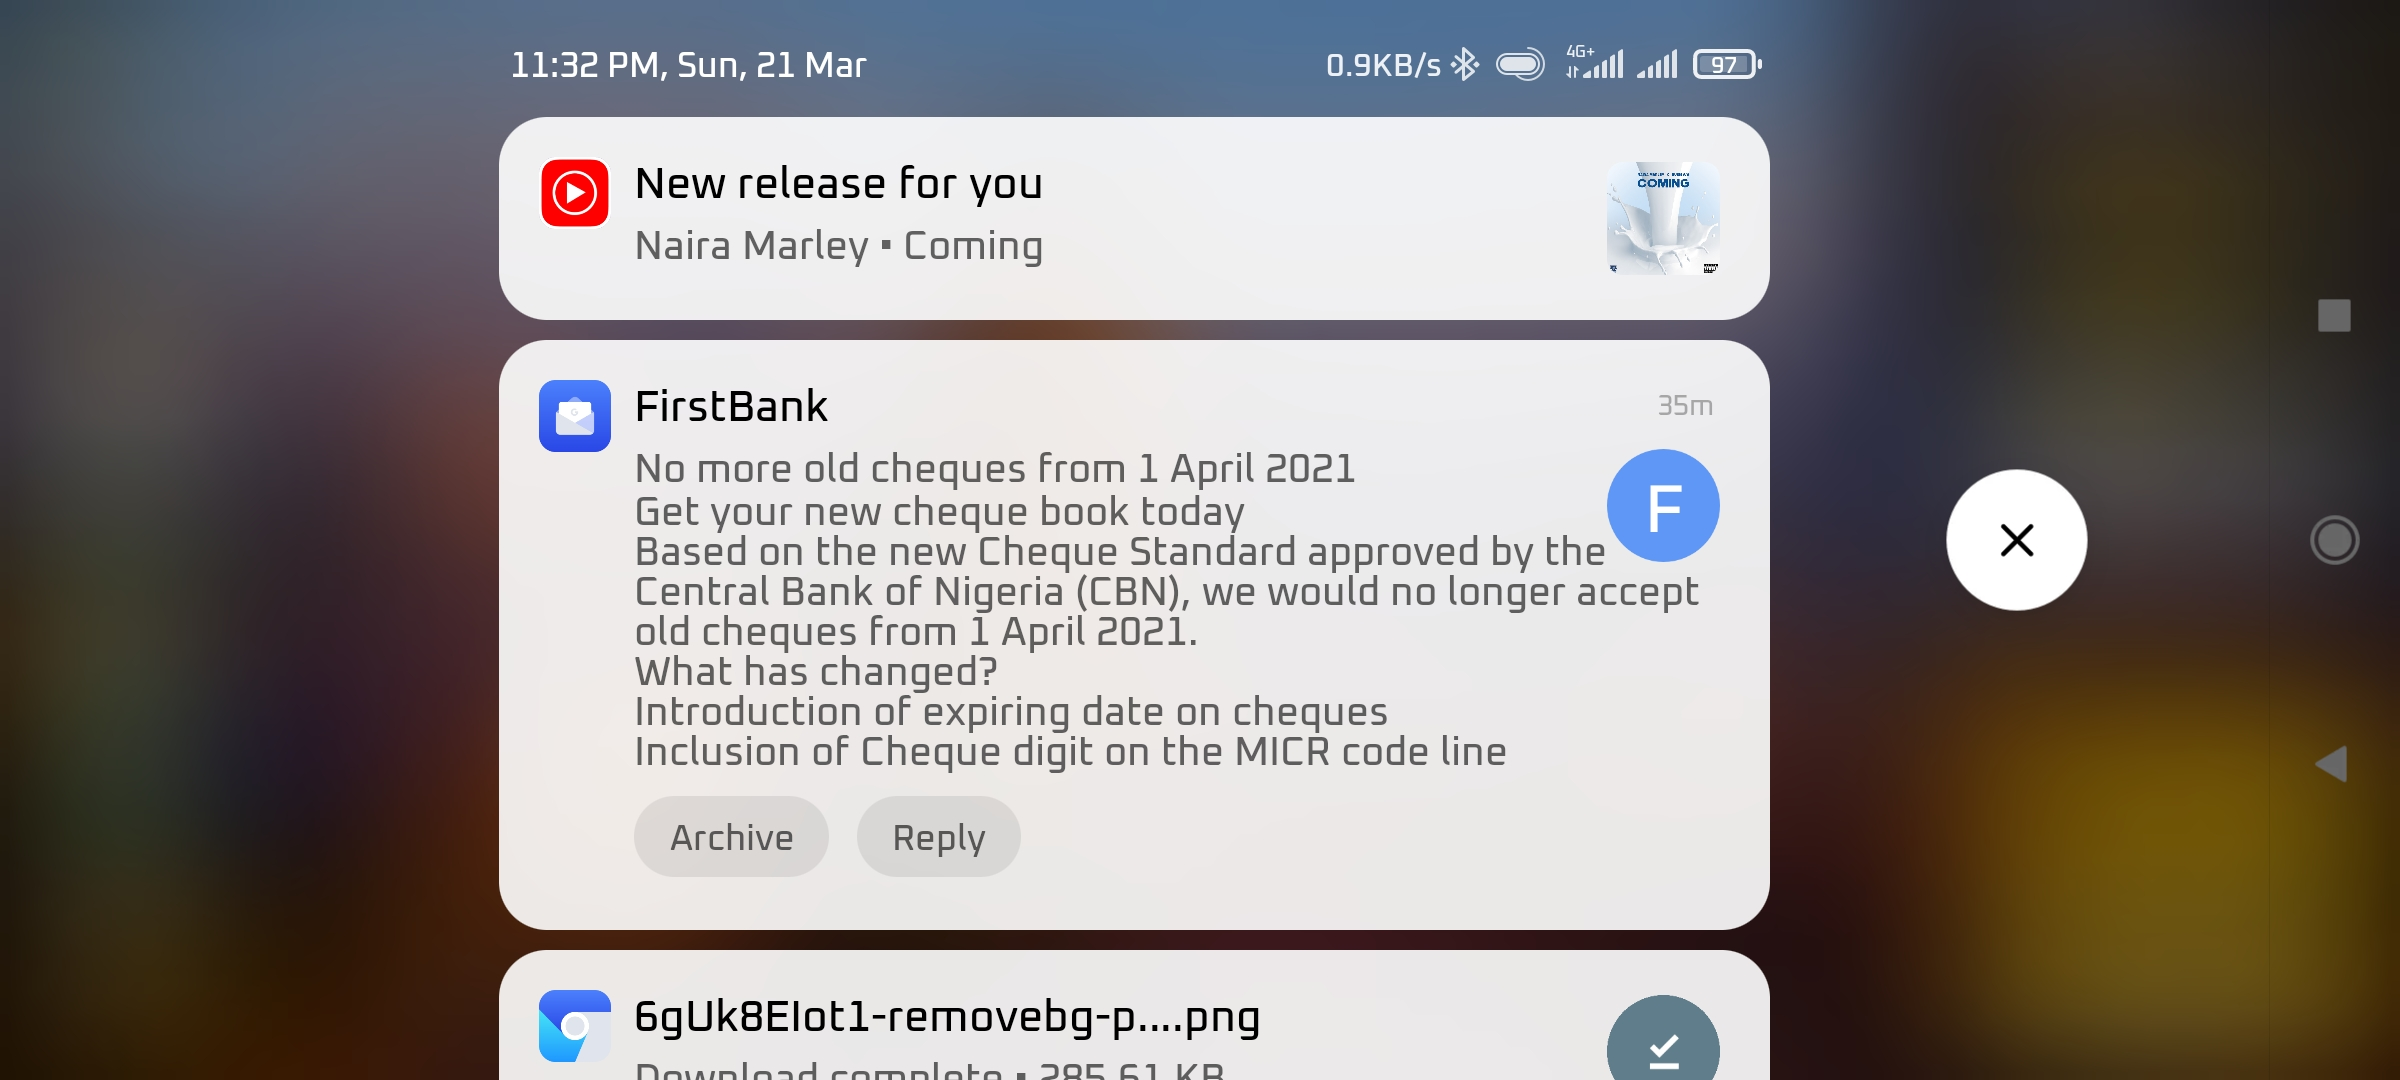 FirstBank Nigeria extends acceptance of old cheques deadline to 1st April 2021